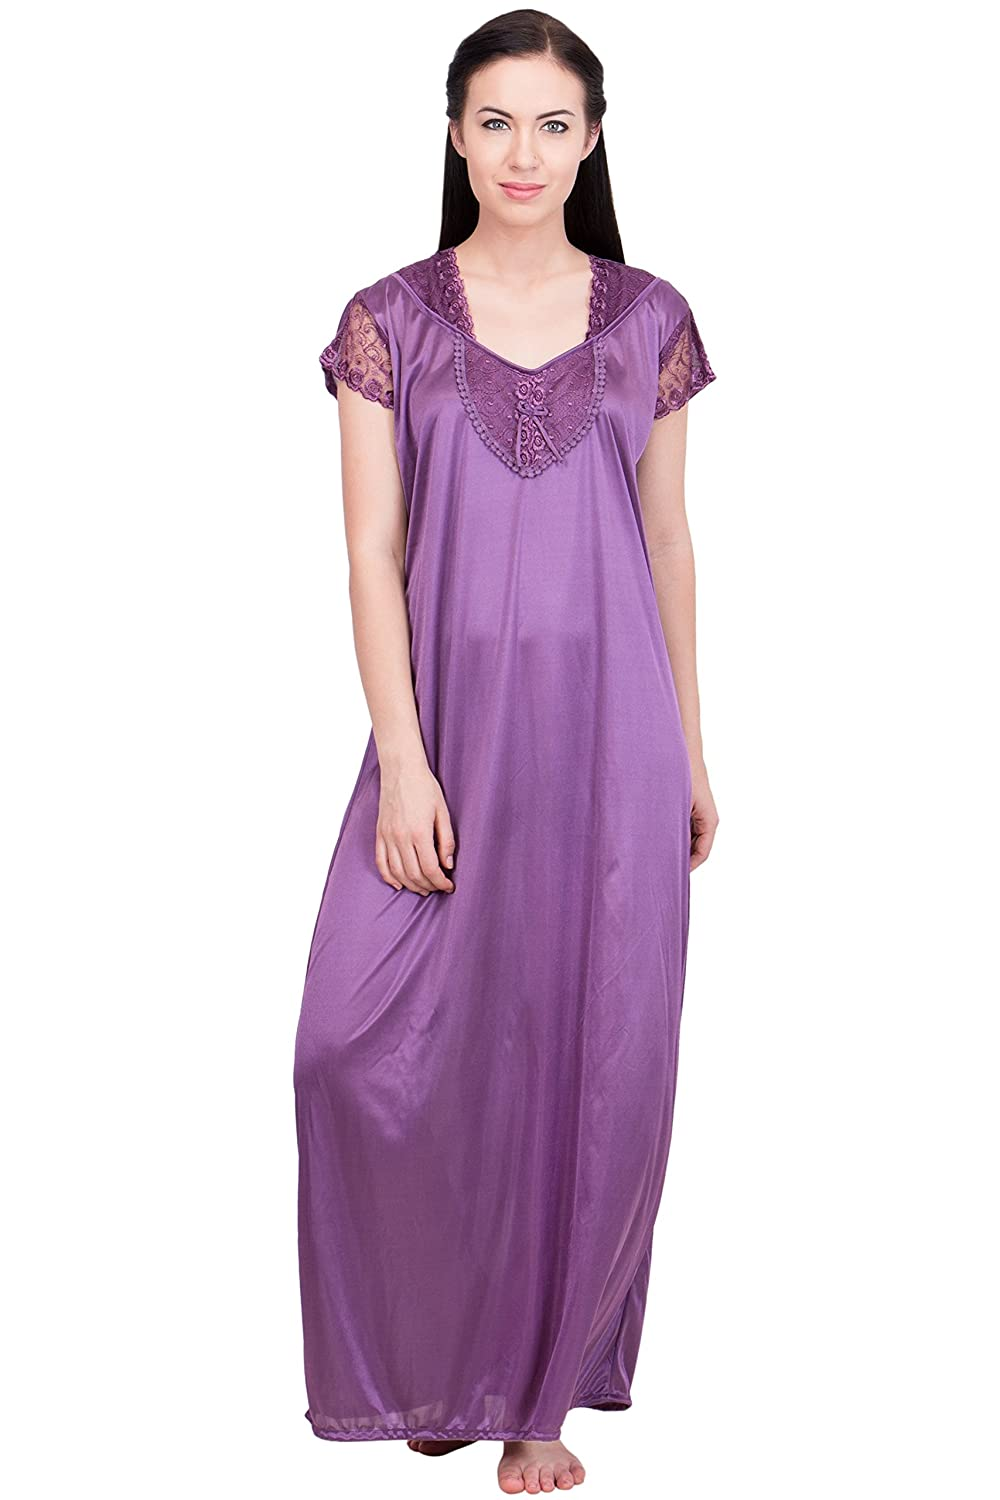 c82712cf20 Lesuzaki Multi Color Long Satin Nighty (Pack of 3) Combo  Amazon.in   Clothing   Accessories